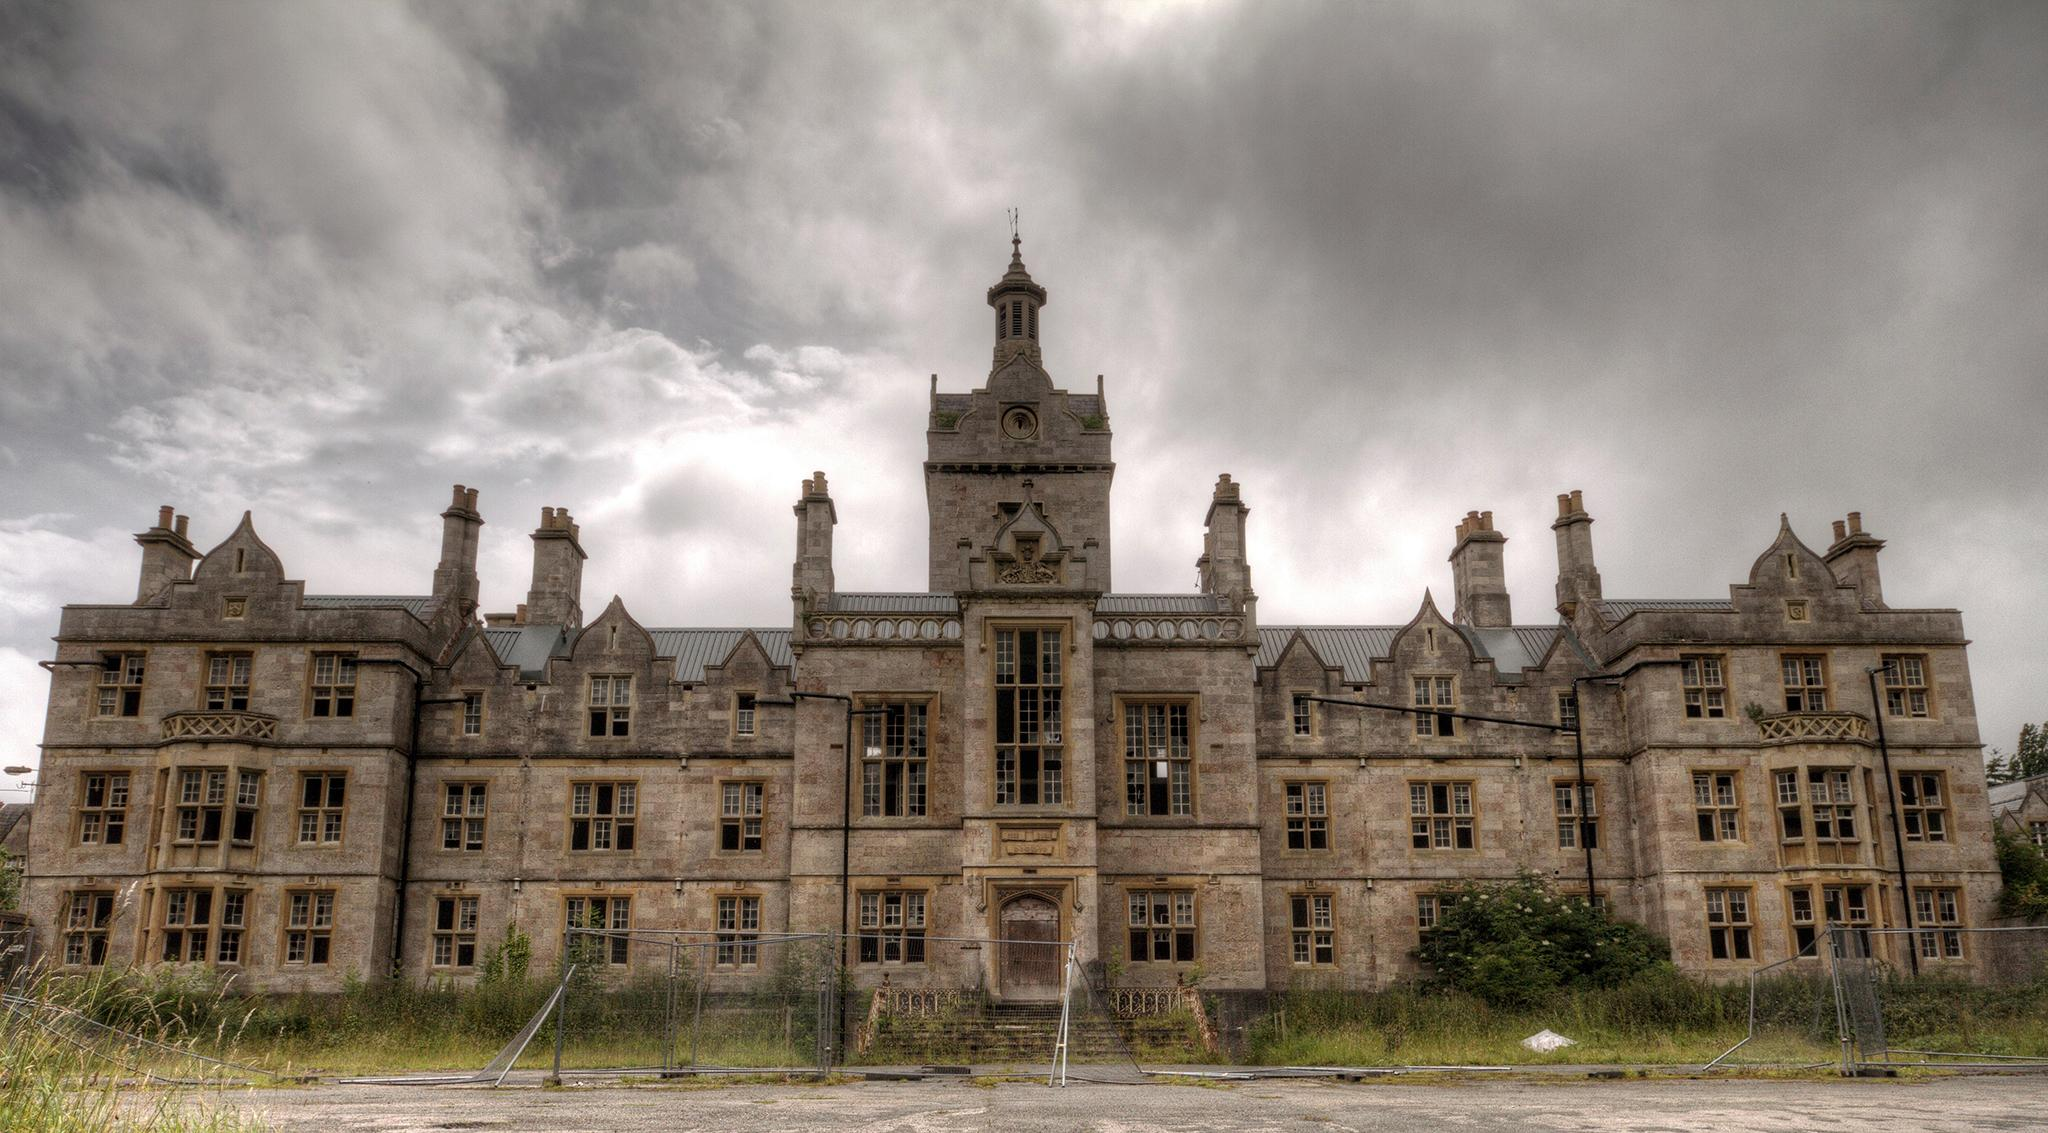 Photos Of Abandoned Buildings Across The Uk To Go On Display In New Exhibition The Independent The Independent